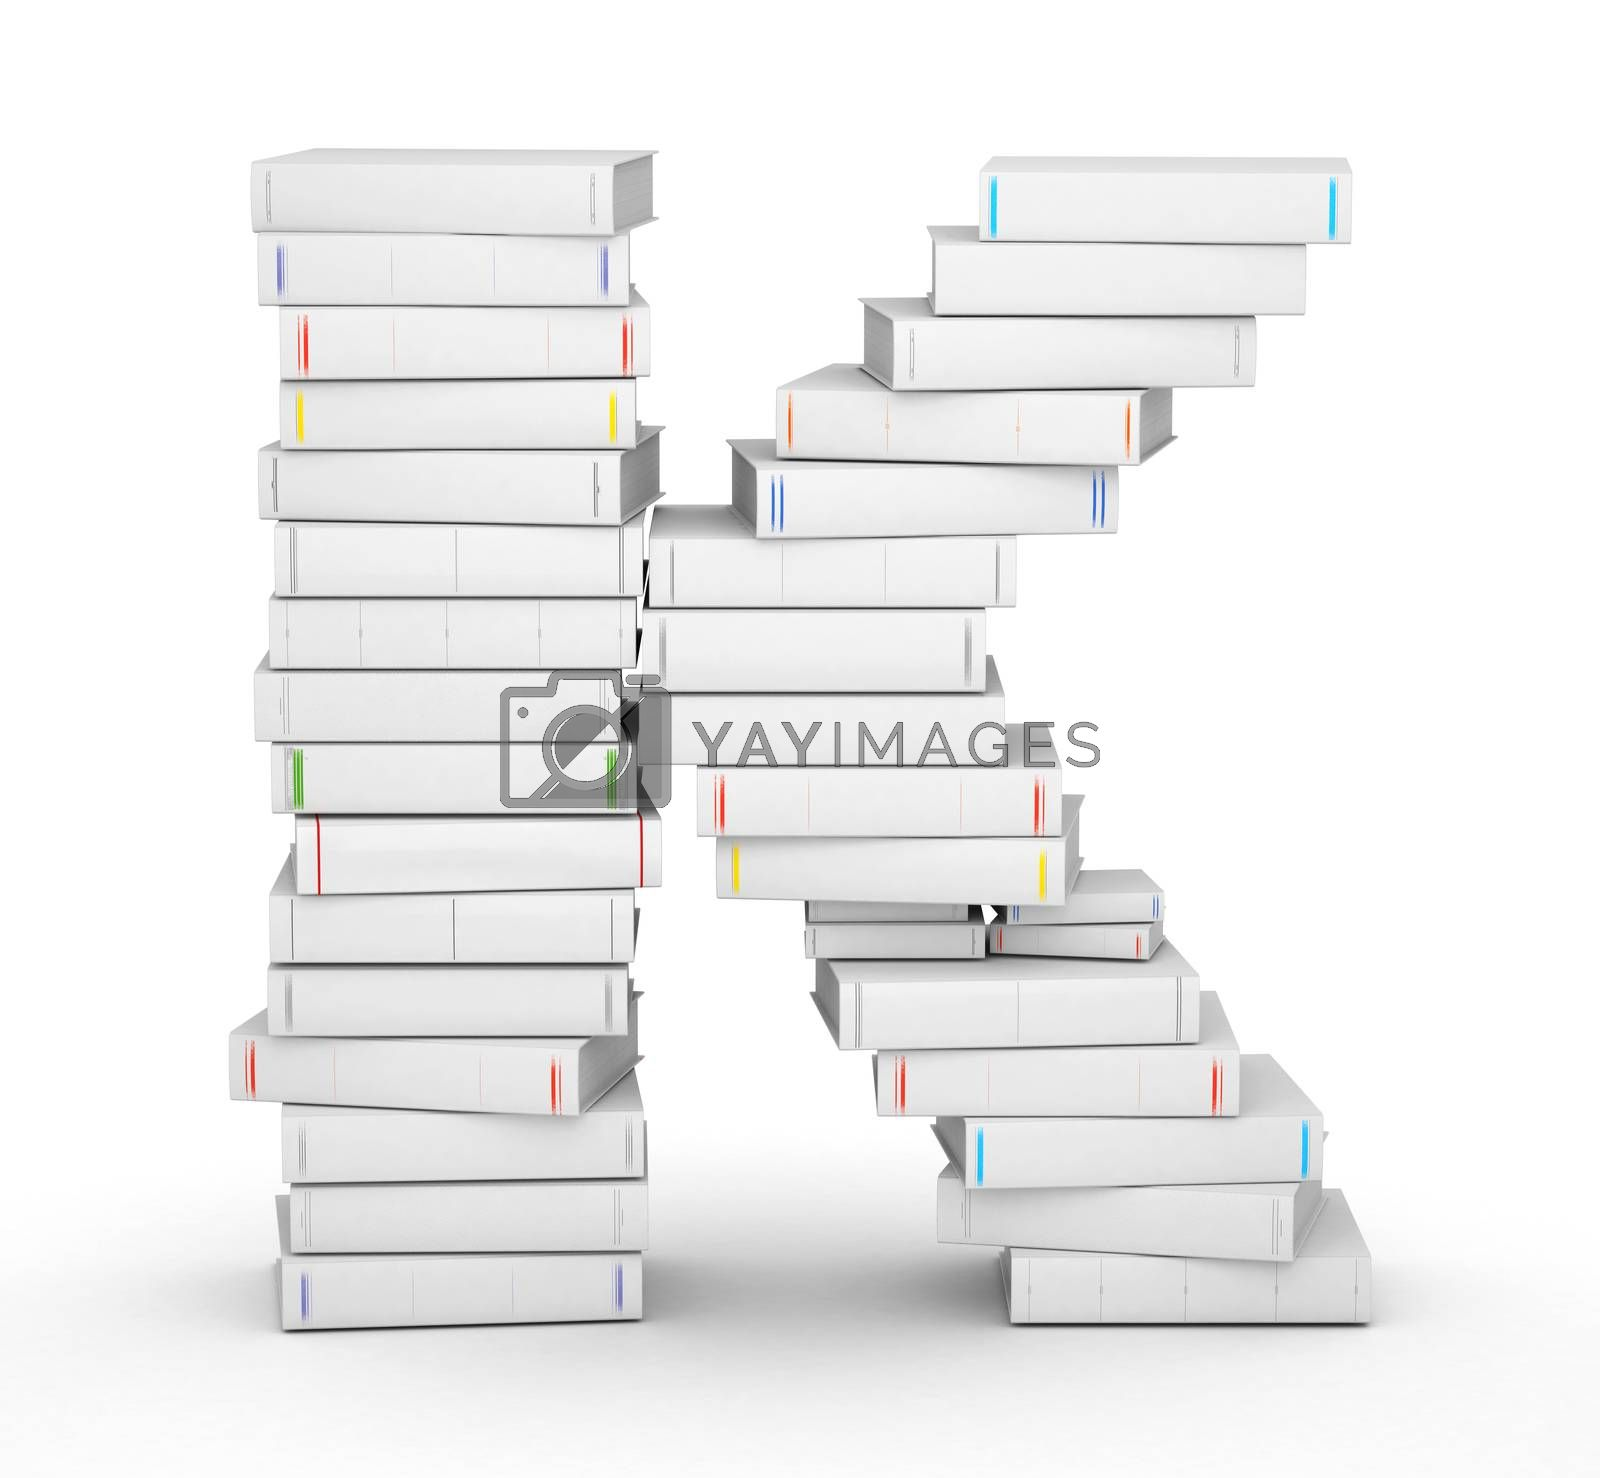 Royalty free image of Letter K, stacked from blank books by iunewind